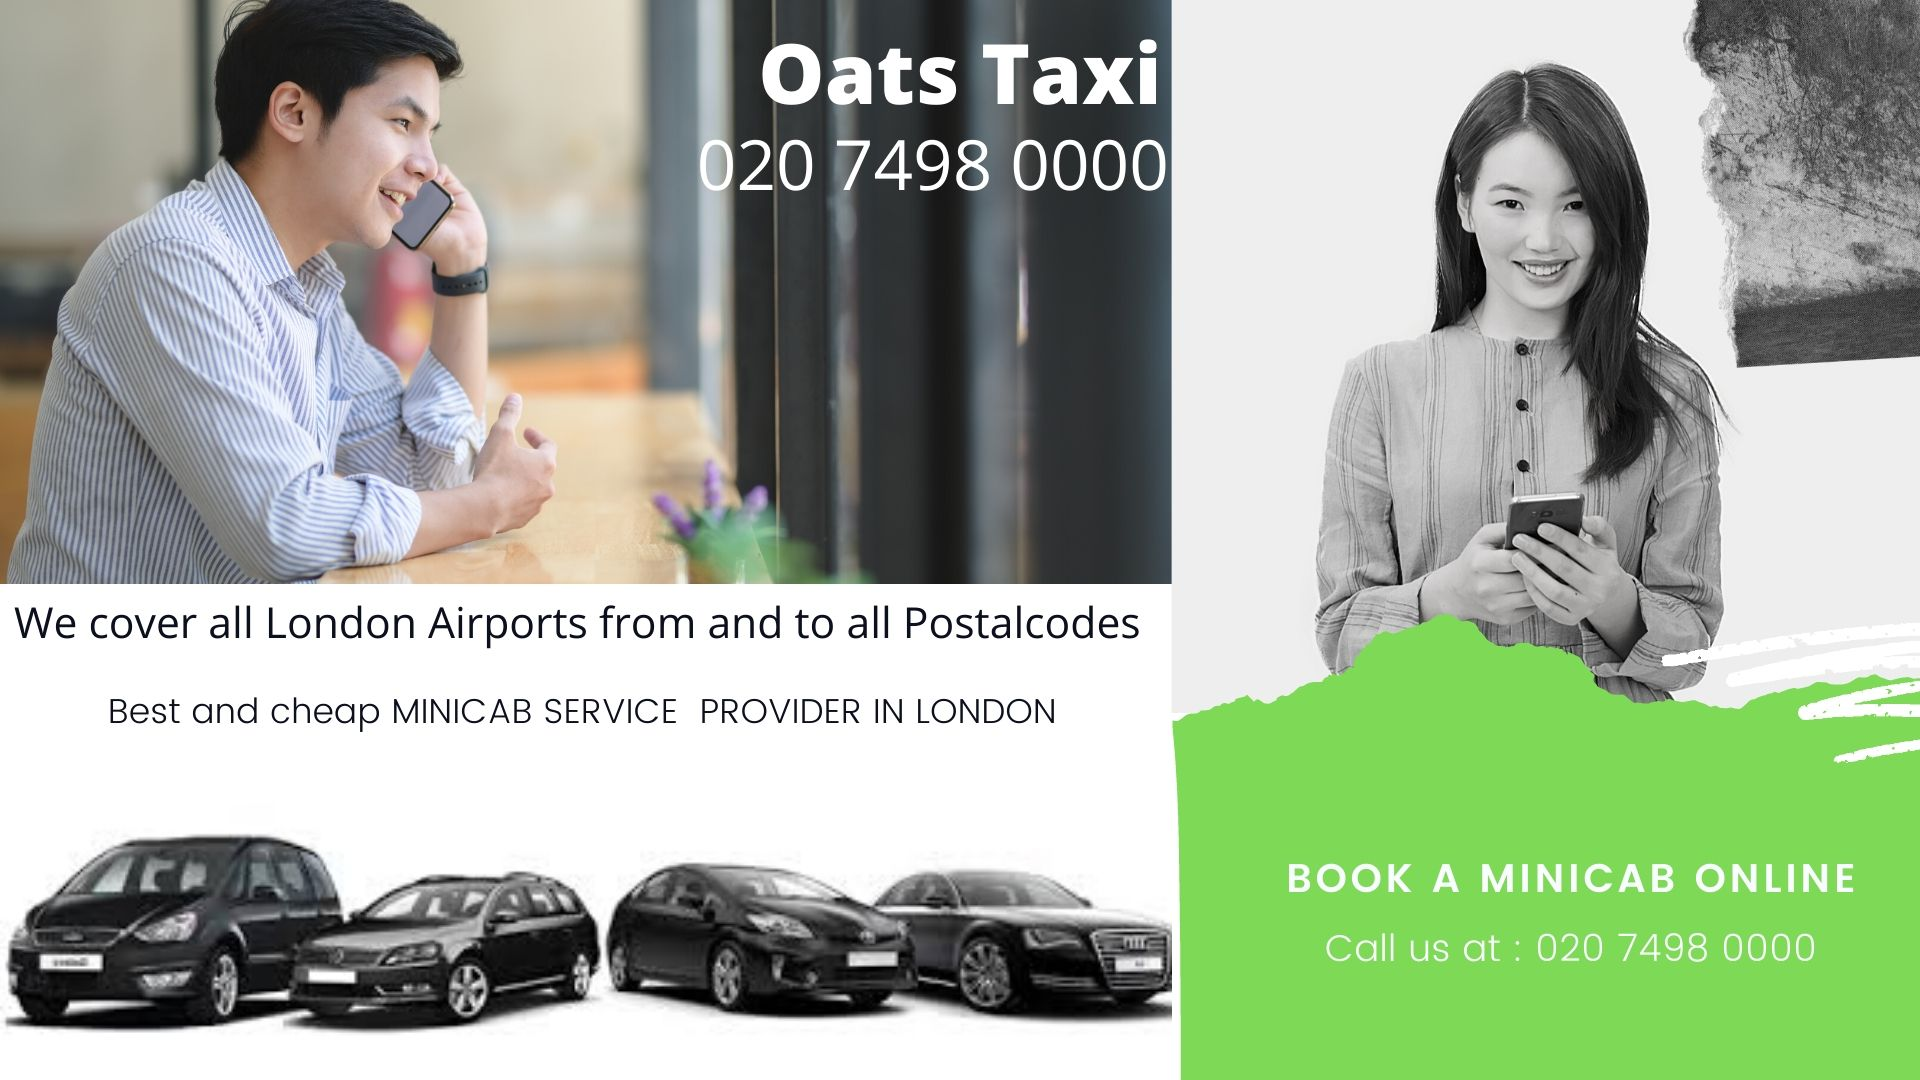 Minicab Office Near CUPAR ROAD, Battersea SW11, Minicab From Battersea SW11 To Gatwick Airport